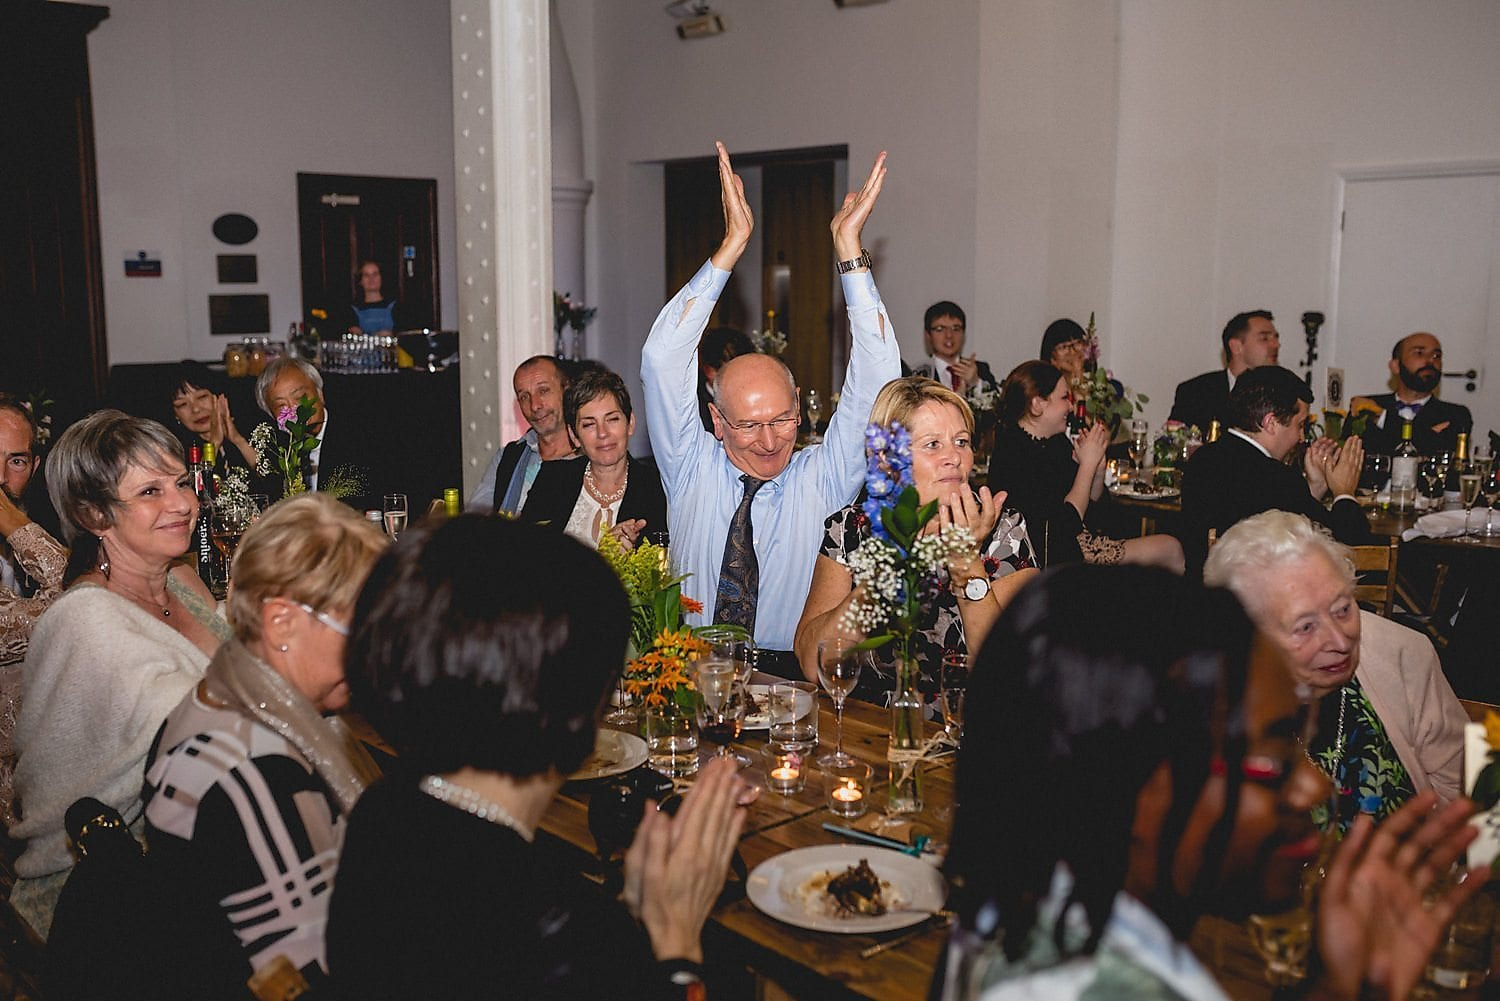 A guest applauds with his hands in the air during the speeches